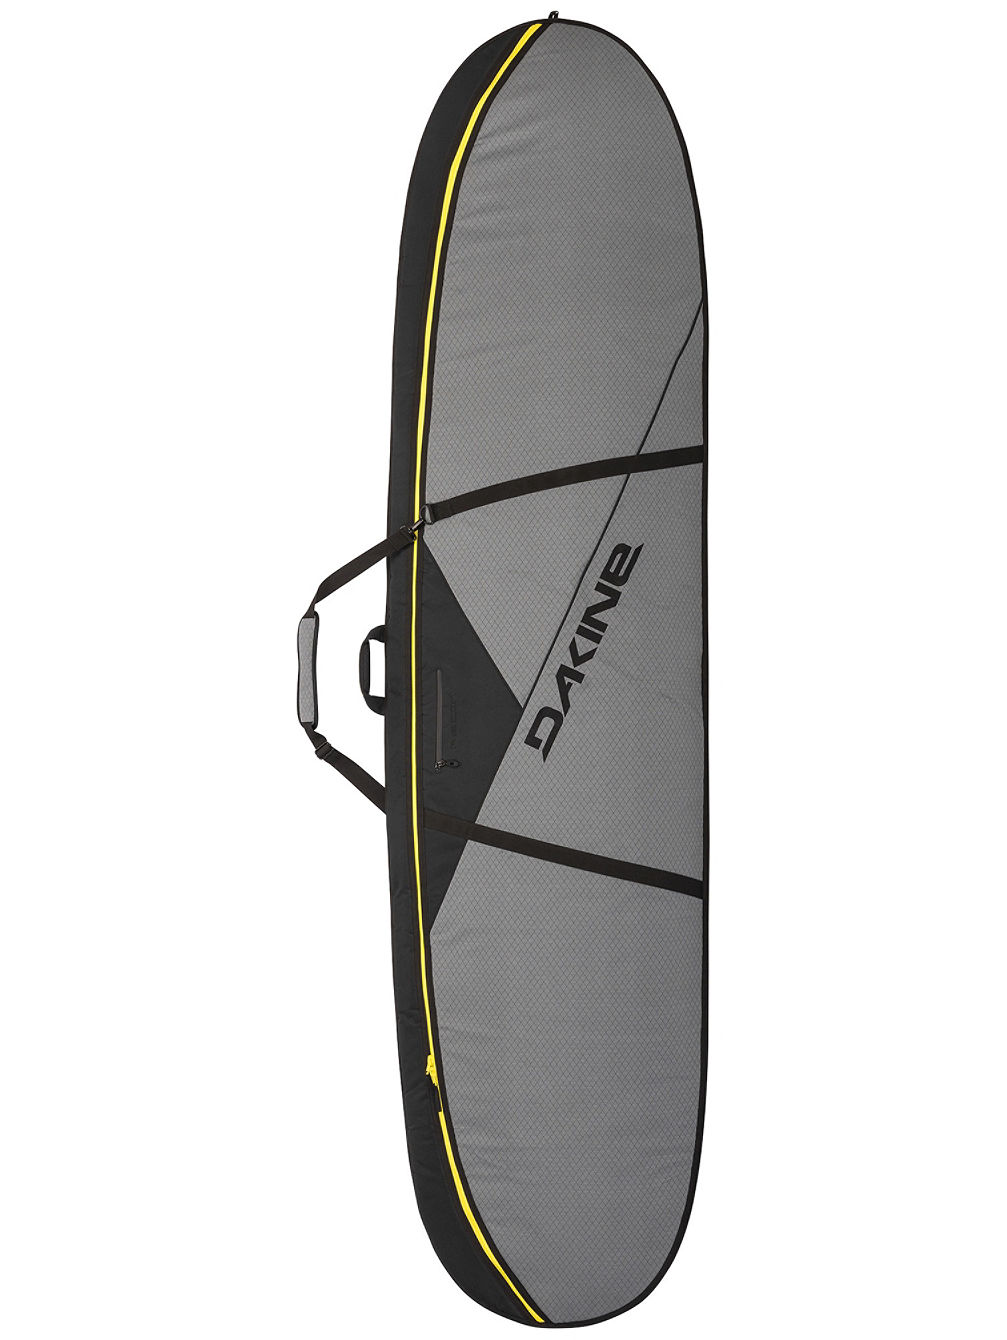 Recon Double Noserider 8'6'' Surfboard B